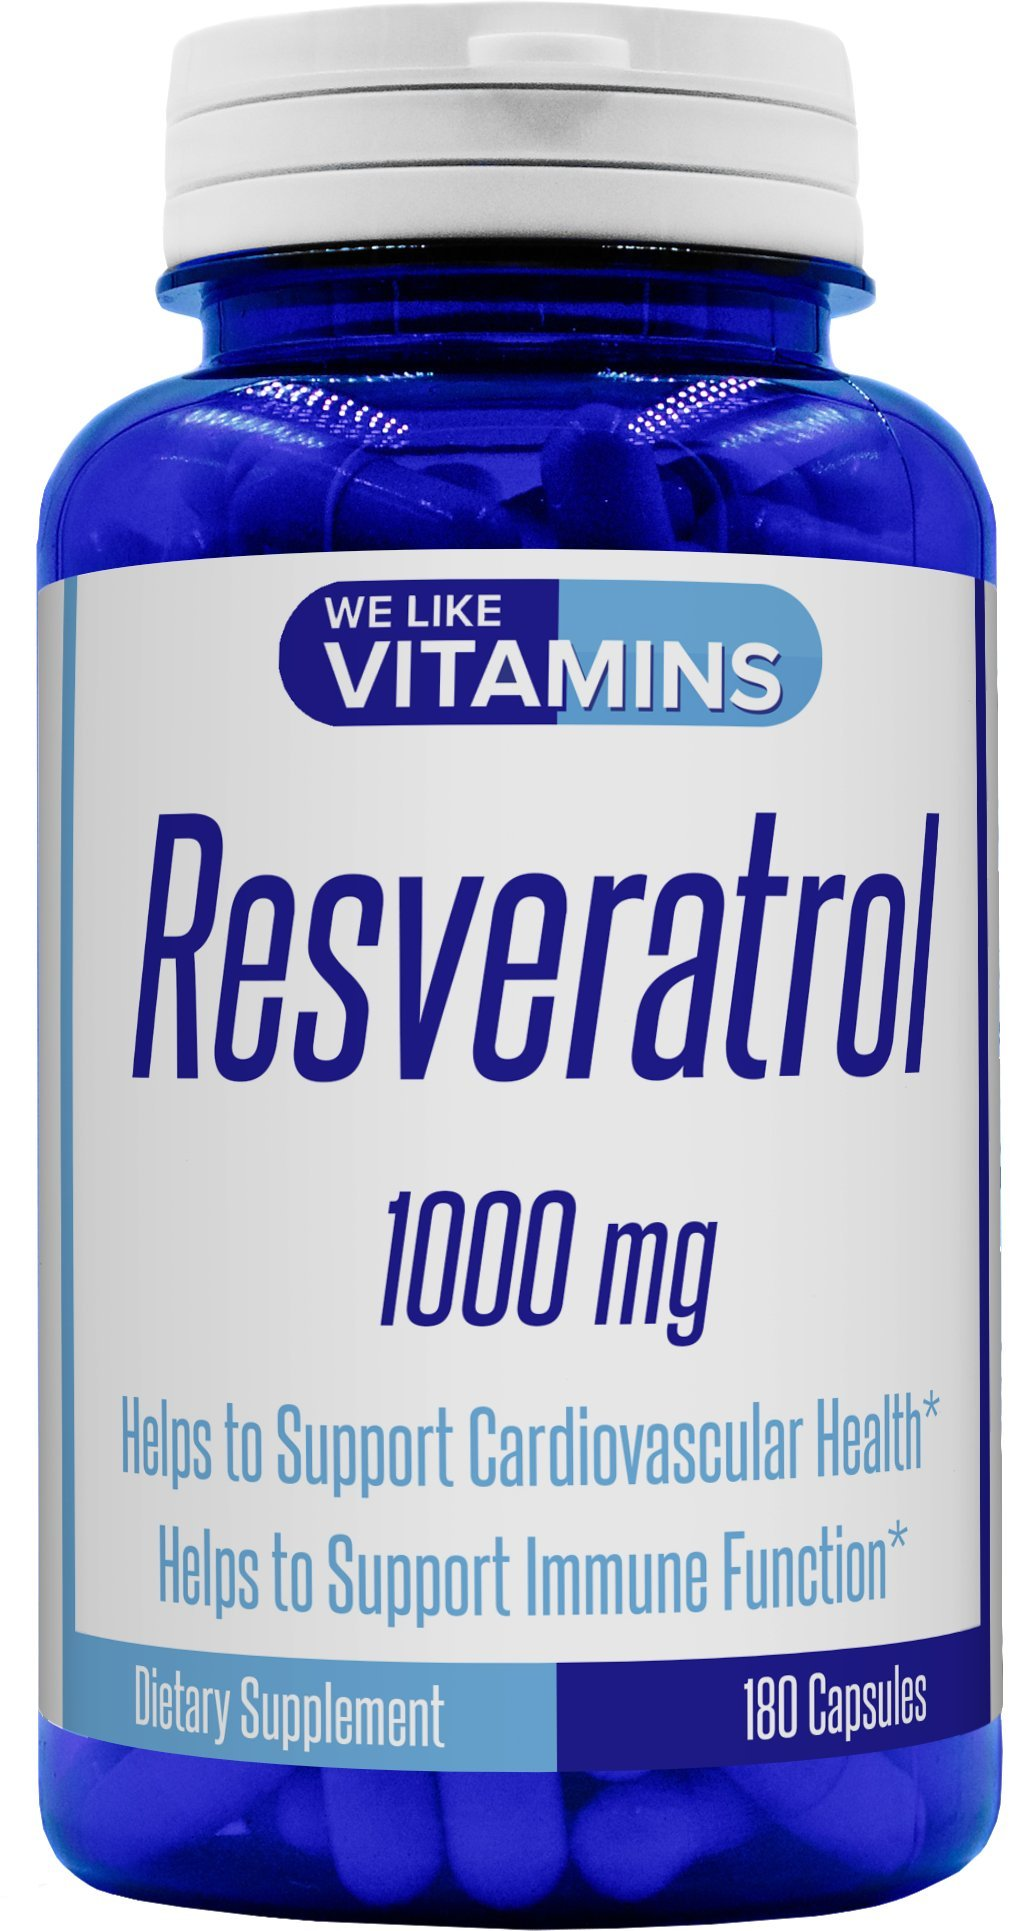 Resveratrol Capsules 1000mg Serving - 180 Capsules - 3 Month Value Supply - Antioxidant Trans Resveratrol Supplement